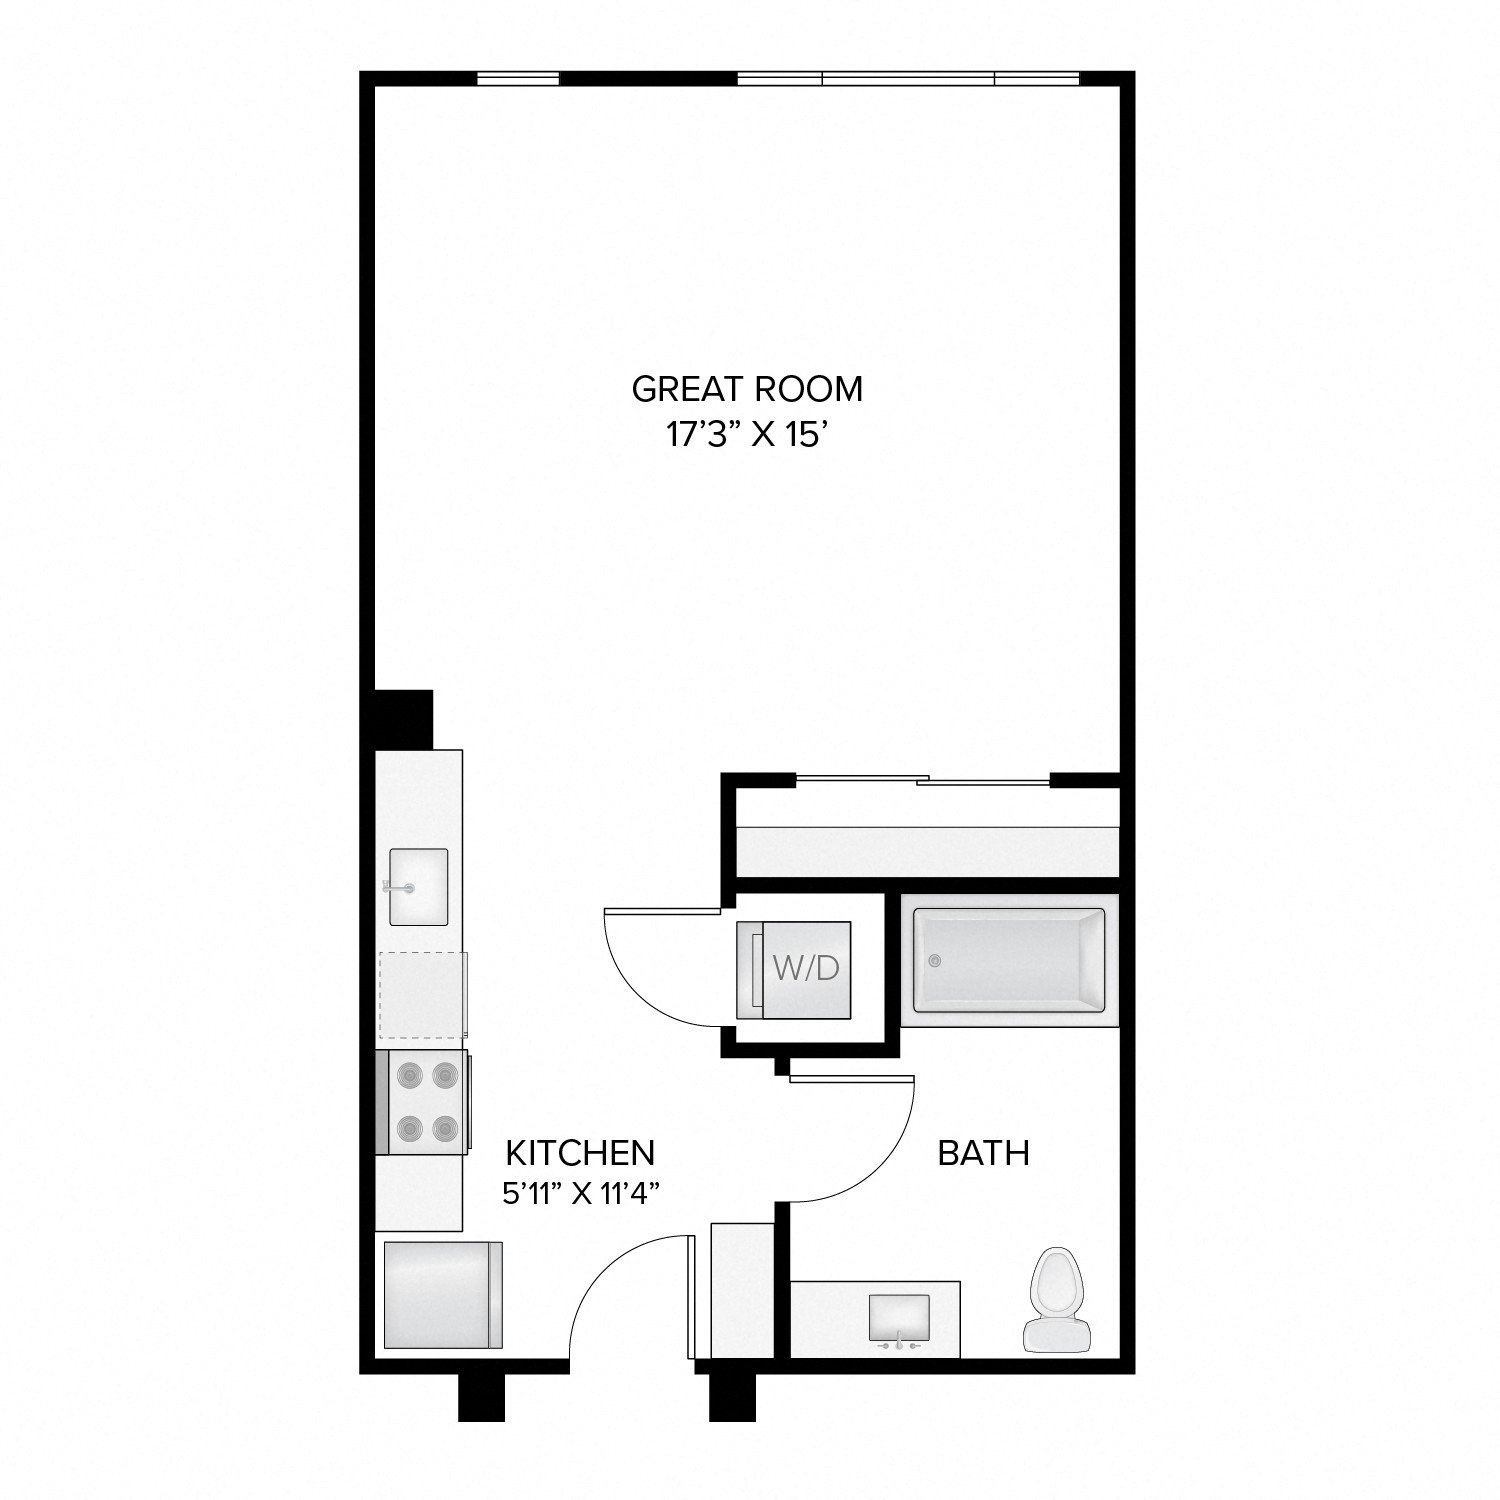 Diagram of the Harrison Deluxe floor plan. Studio apartment with one bathroom, an open kitchen and living area, and a washer-dryer.